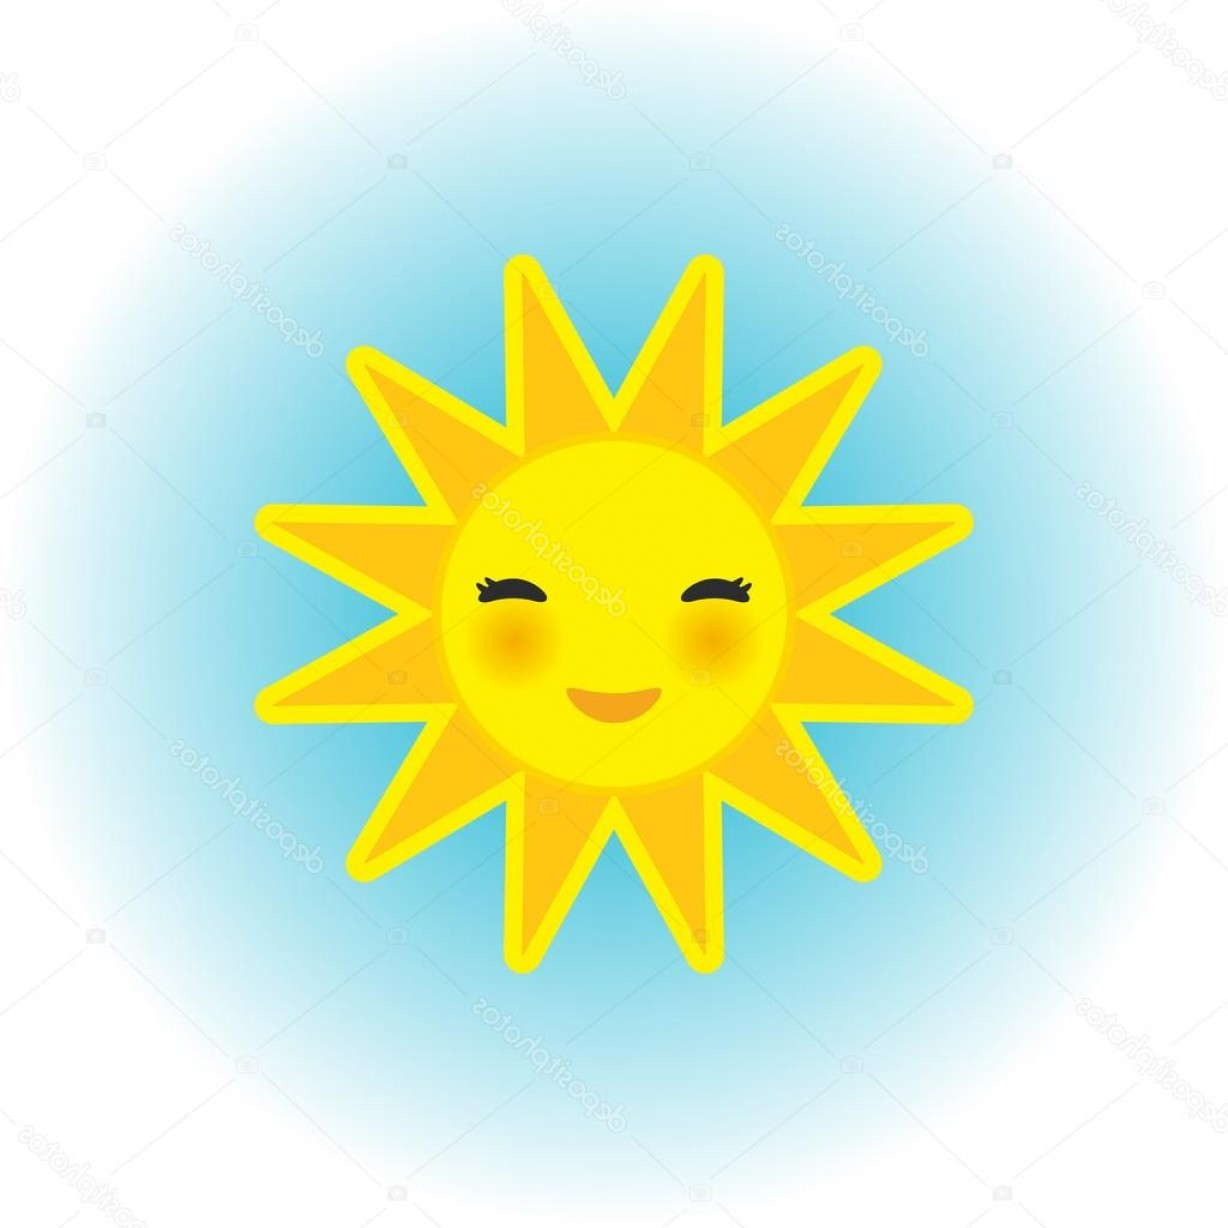 Blue Background Vector Cartoon Sun: Stock Illustration Funny Cartoon Yellow Sun Smiling